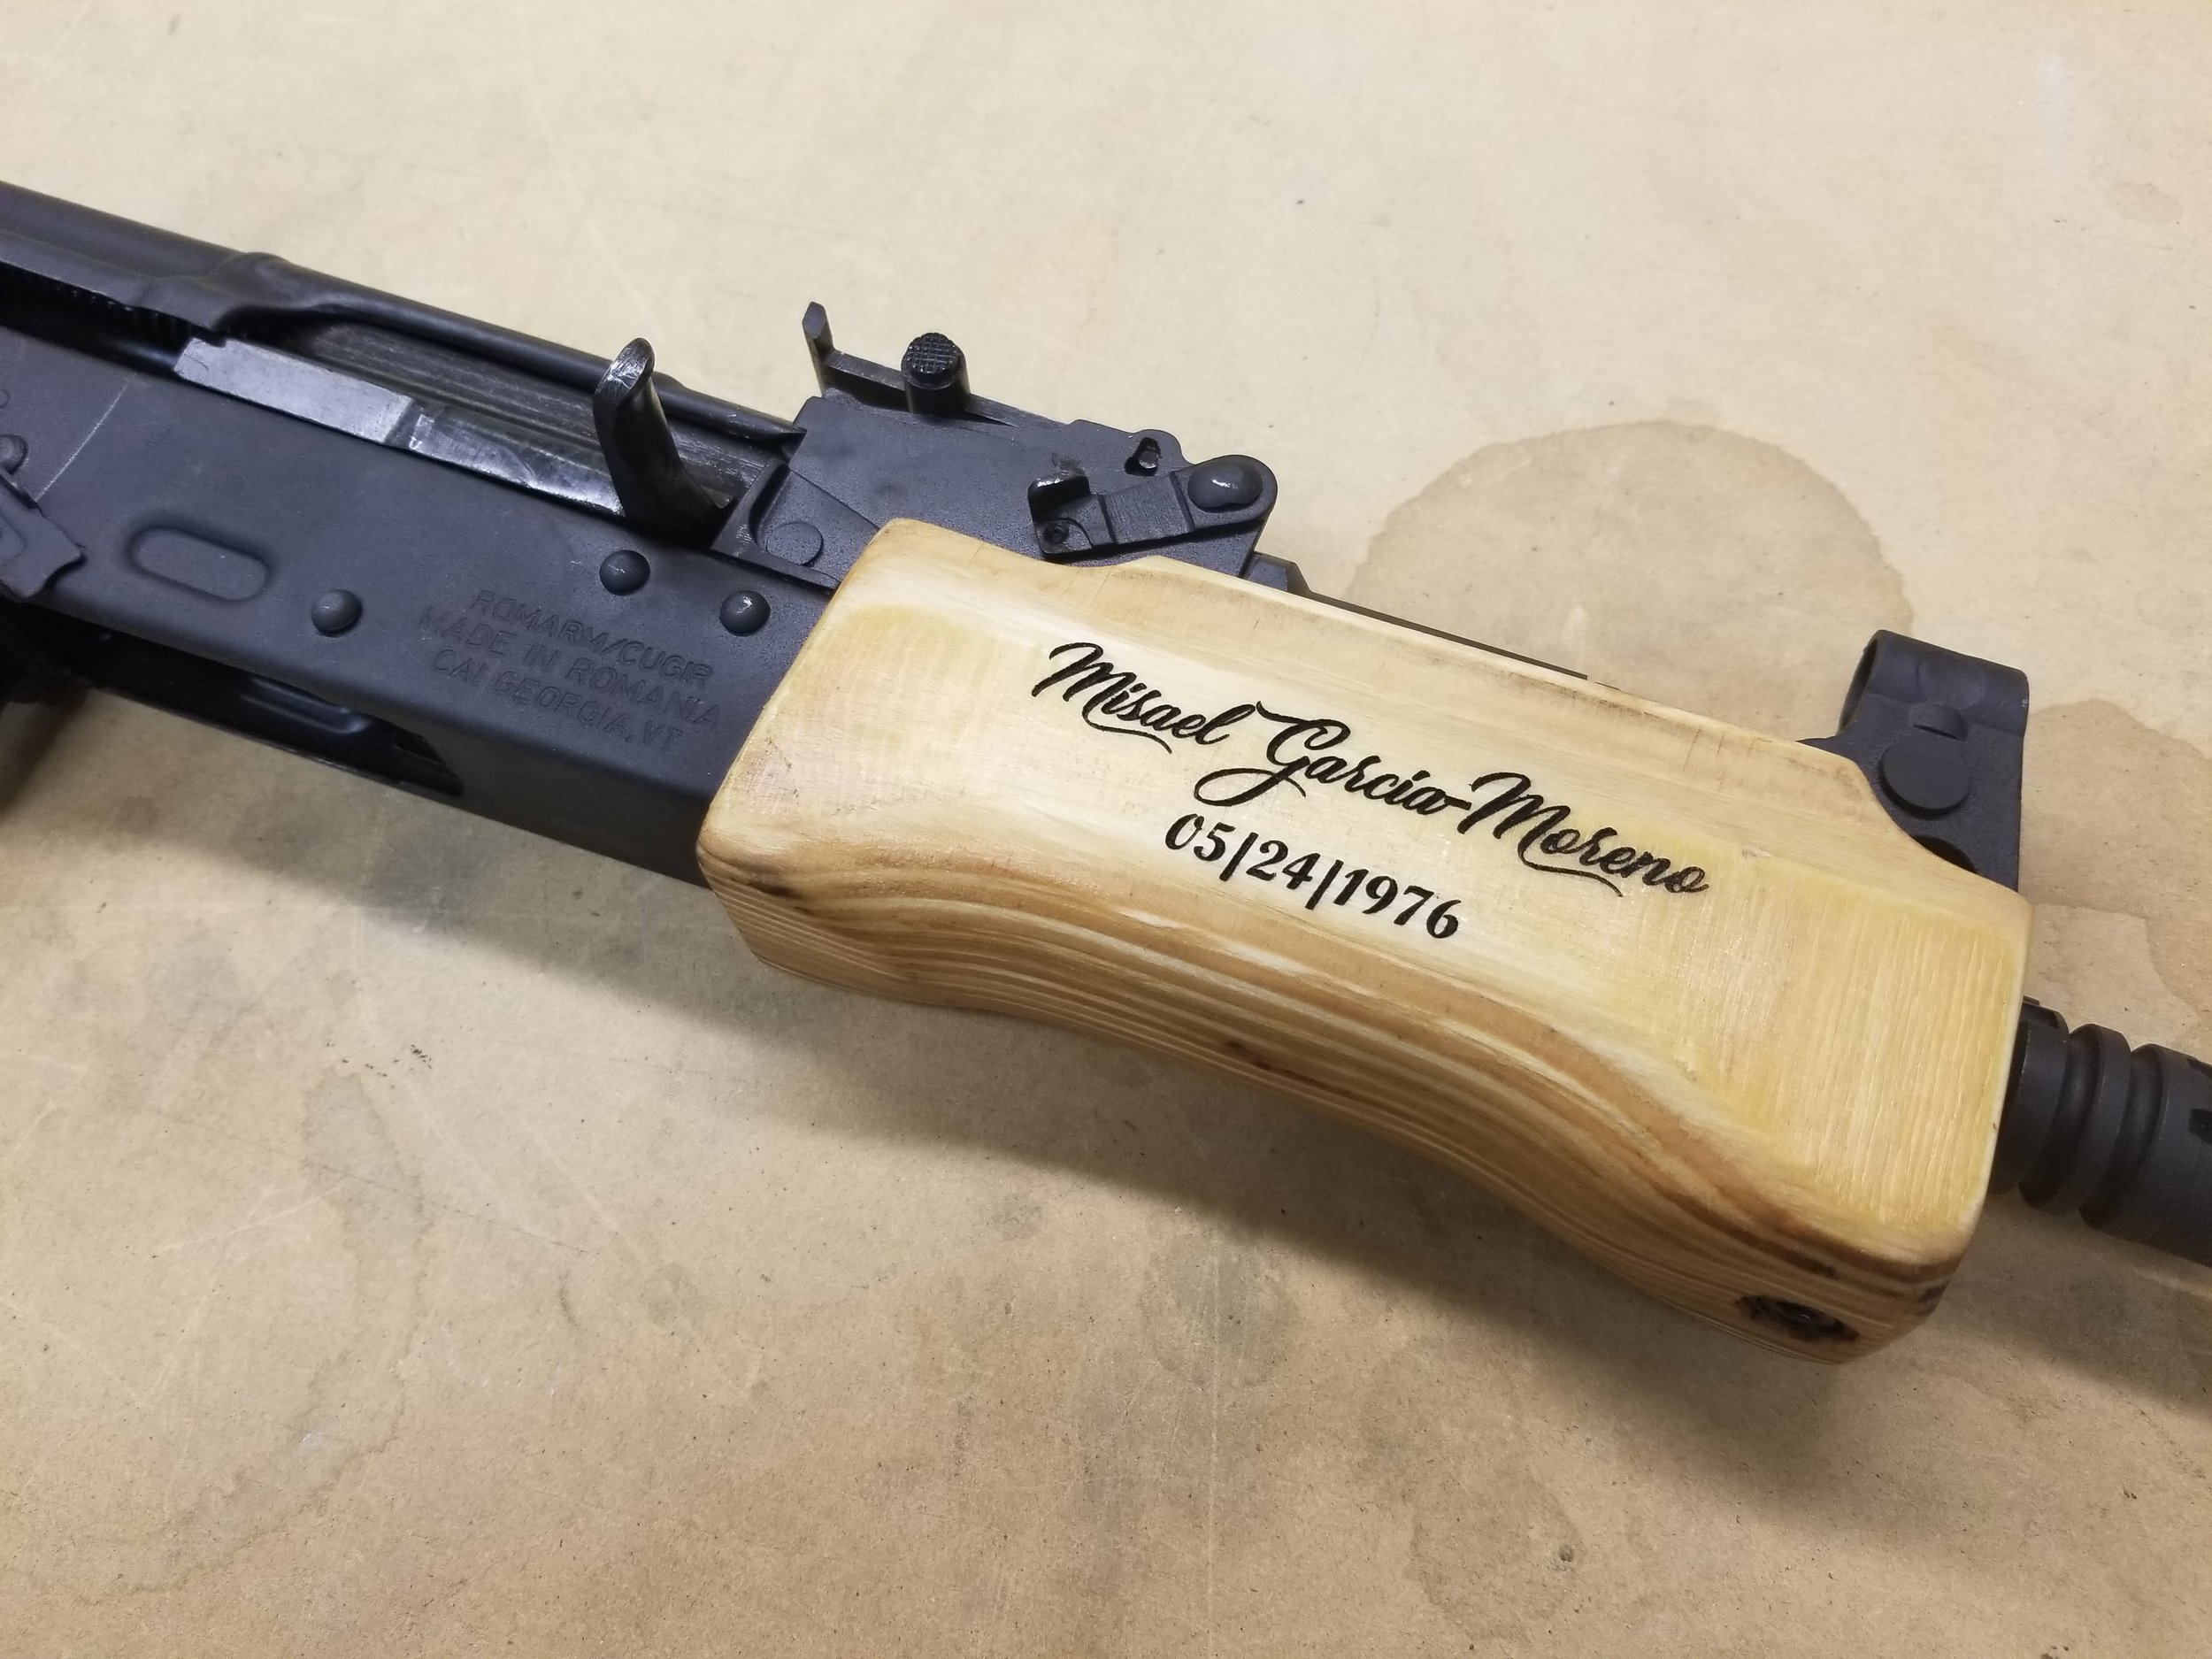 Copy of Custom Engraved SBR - Personalized SBR - Firearm Projects from Engrave It Houston